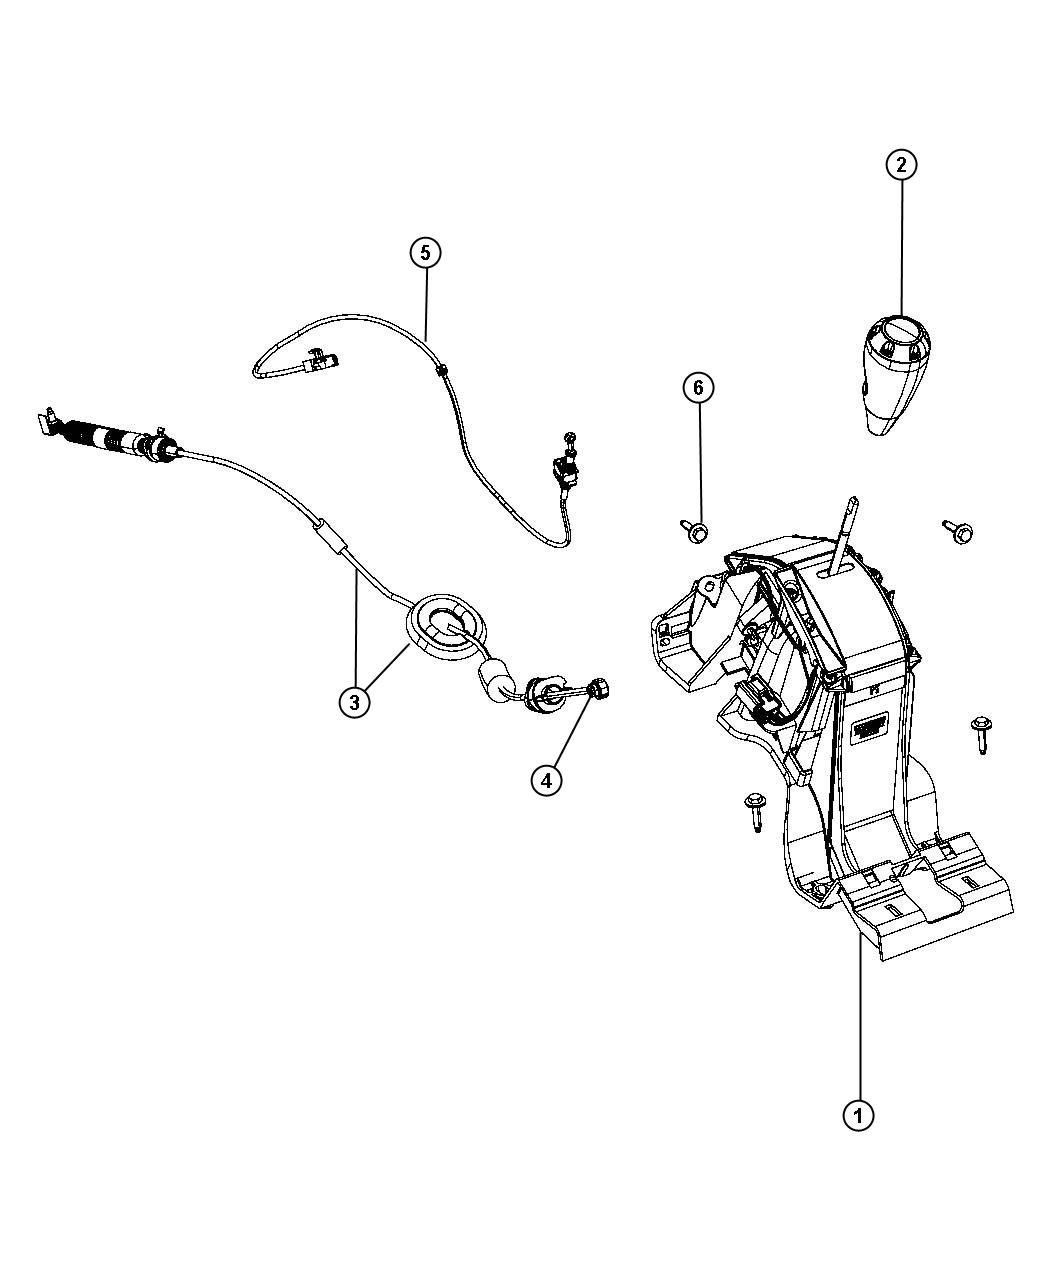 2008 Dodge Caliber Cable. Gear selector, ignition